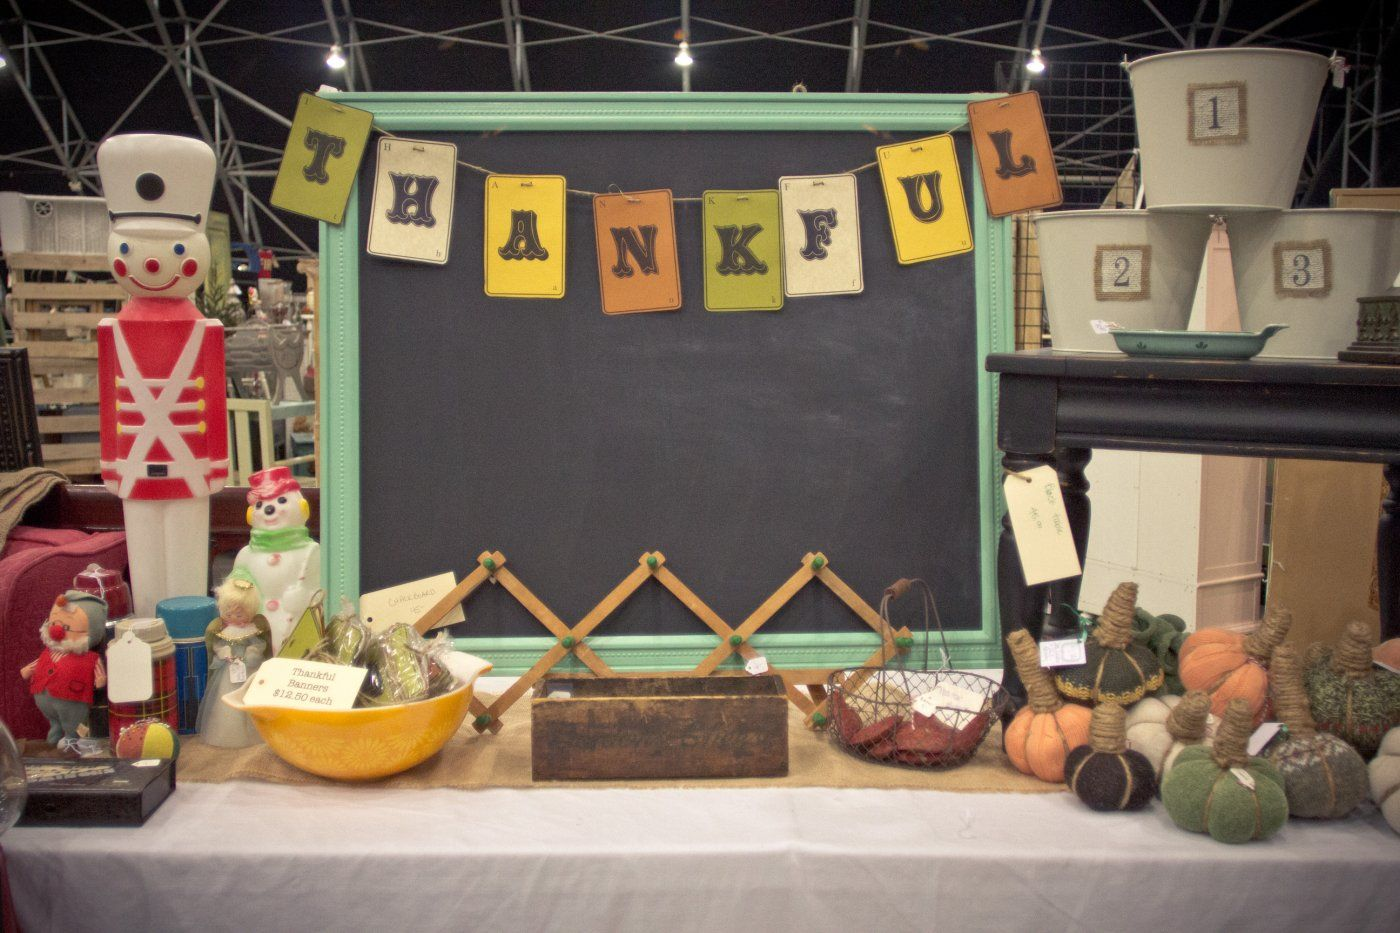 Thankful Booth Display Idea Craft Booth Displays Antique Booth